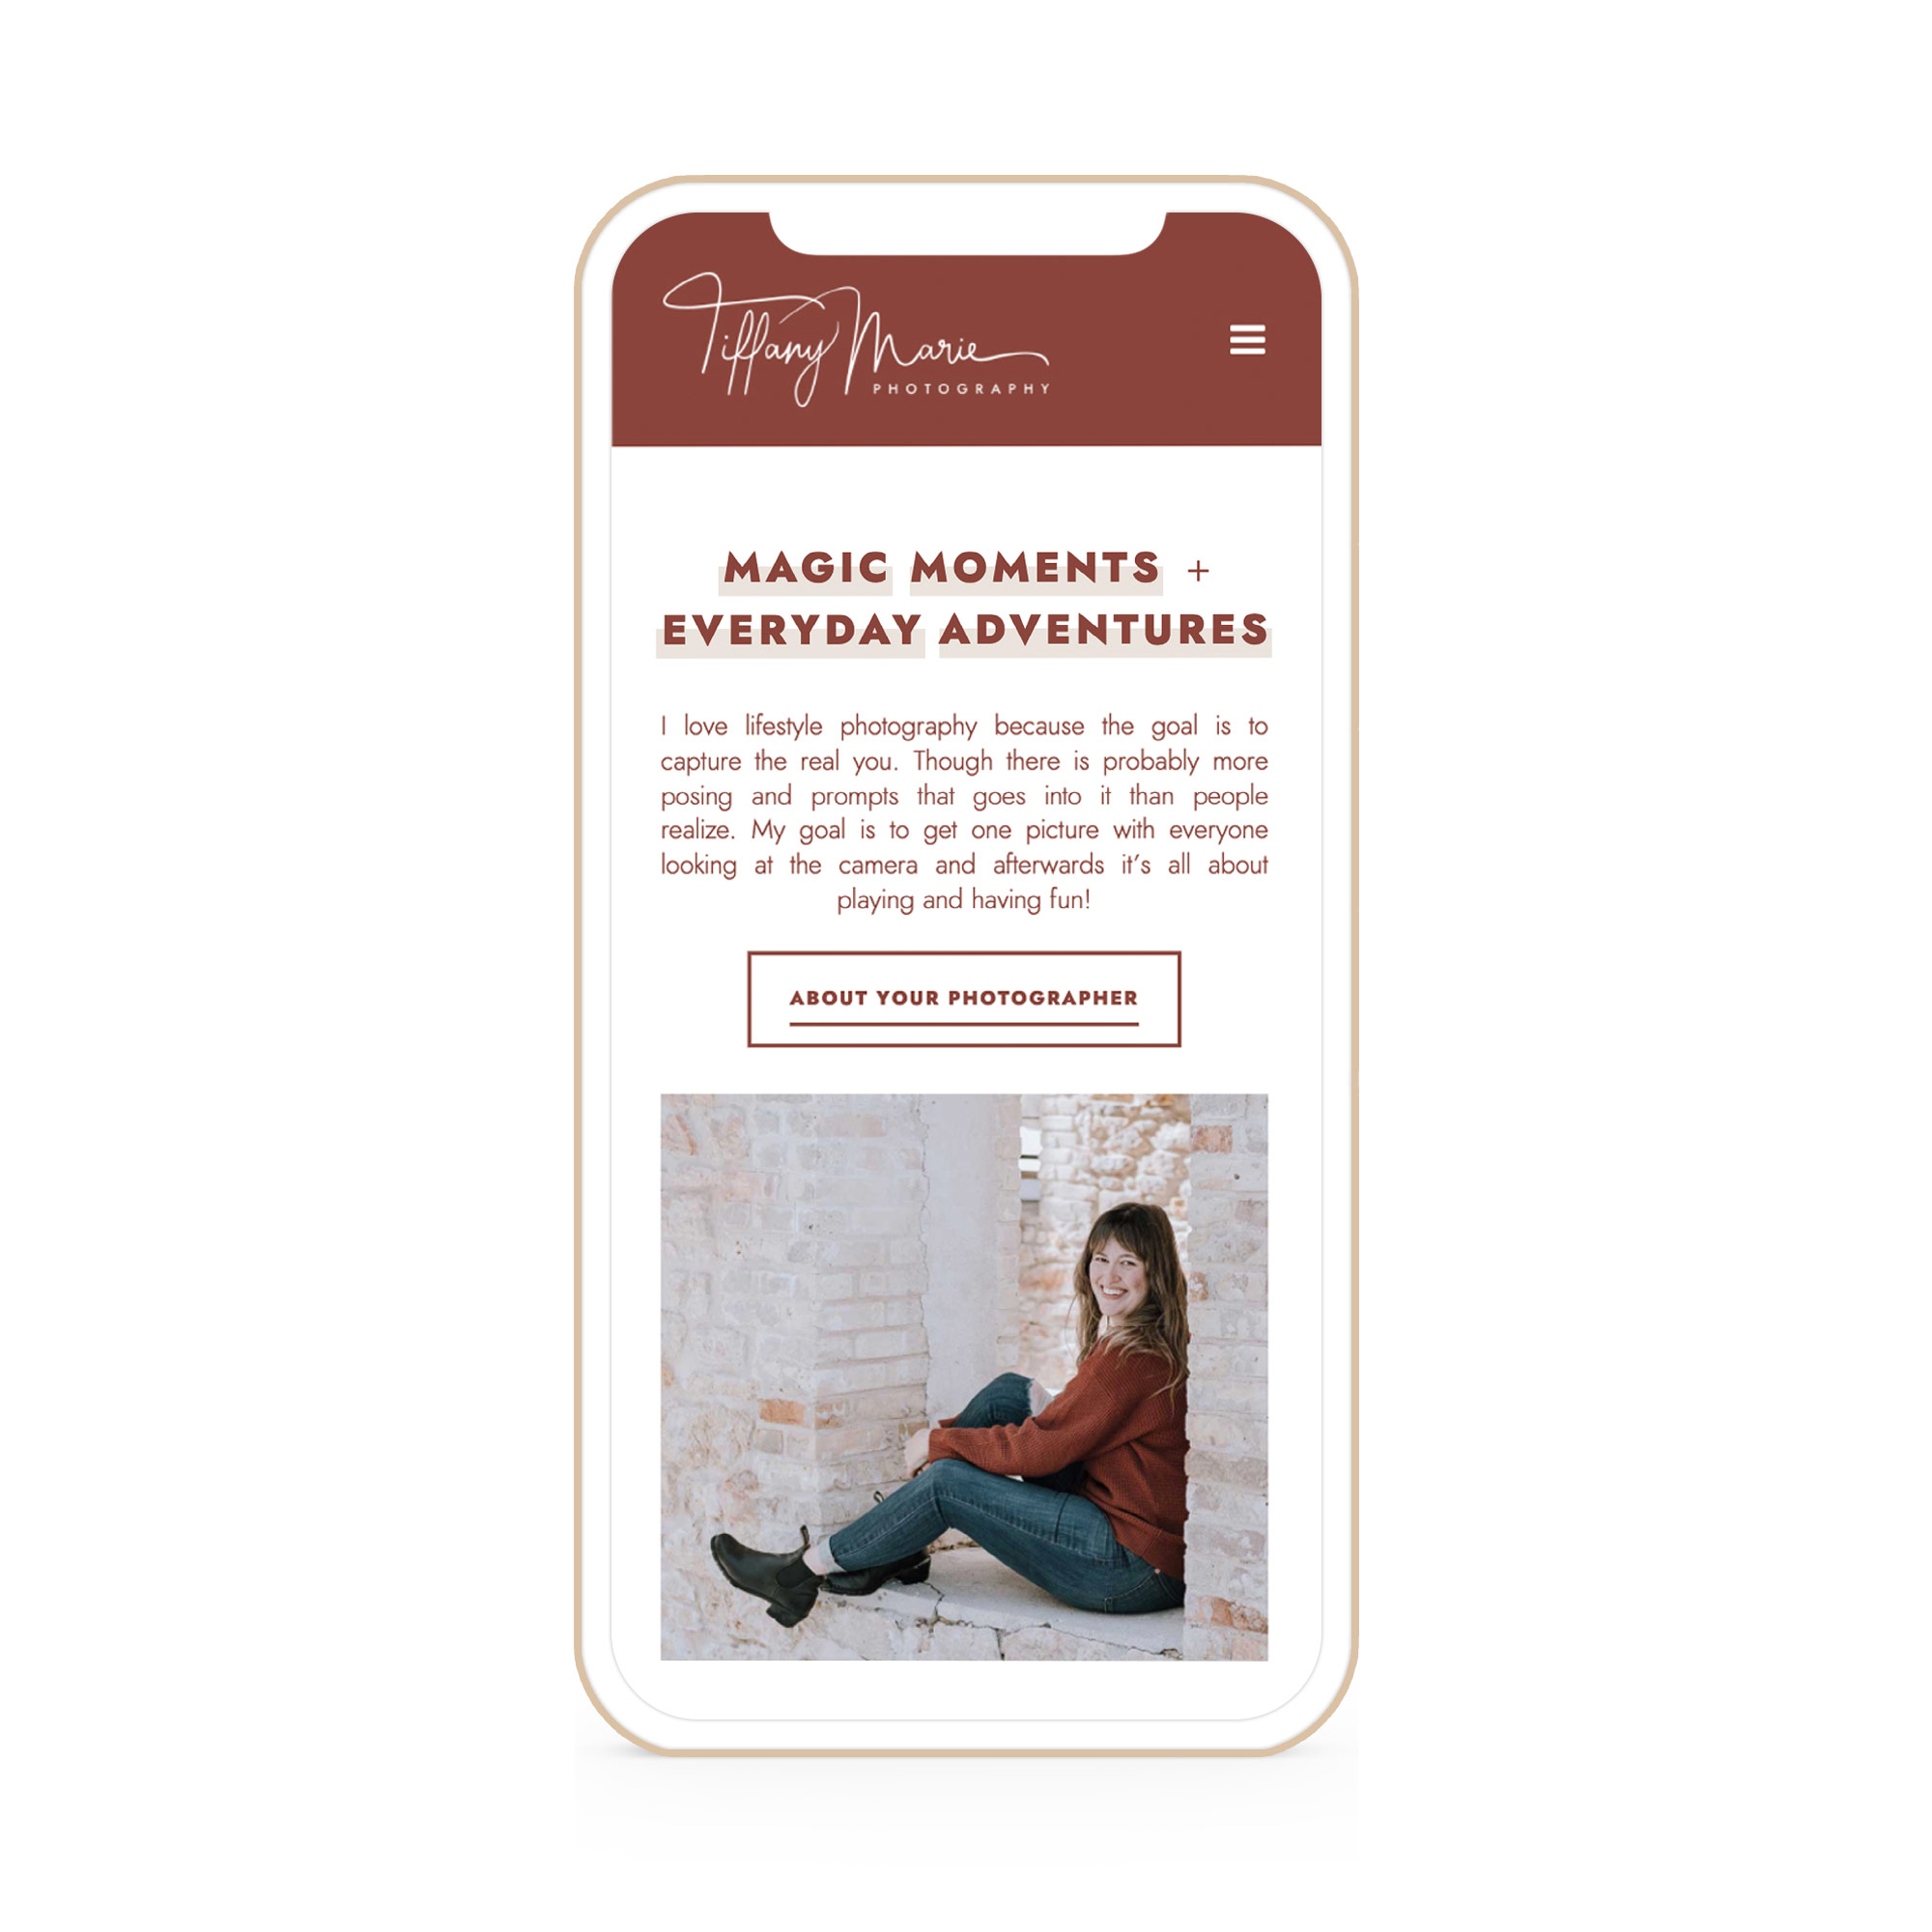 Tiffany Marie Photography Winnipeg Website Design Branding iPhone Flat 1